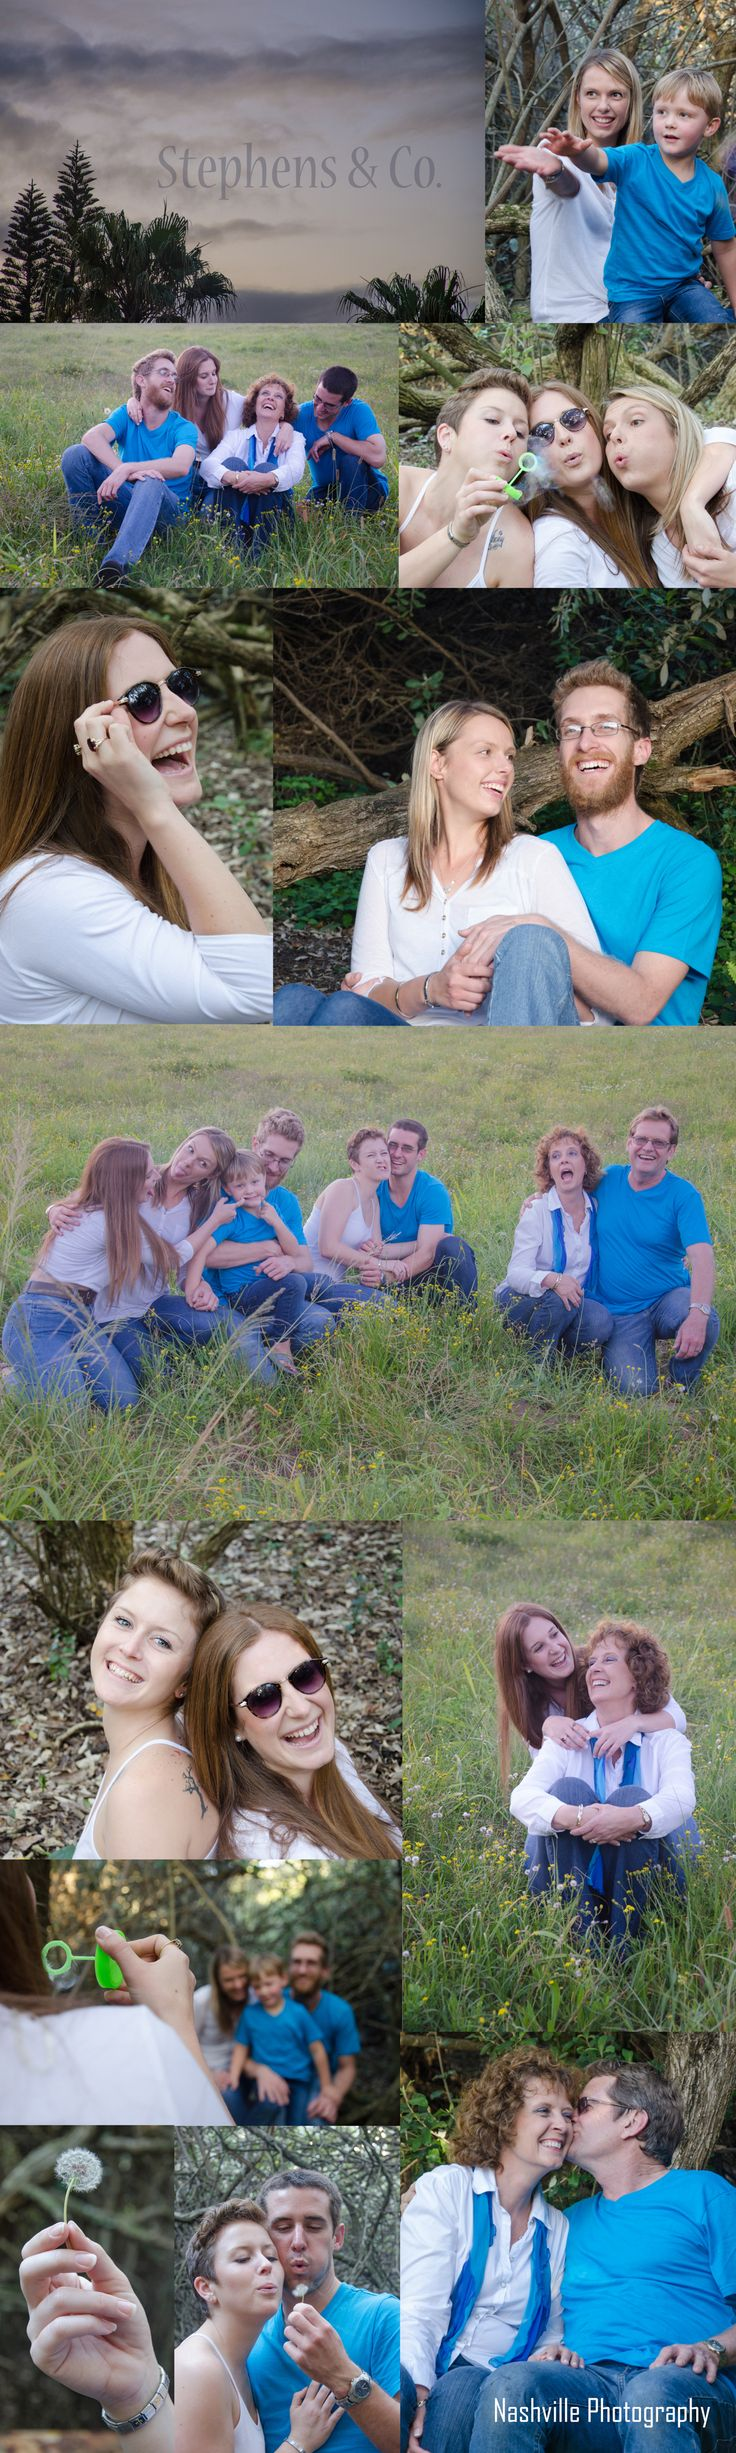 Stephens & Co.  #family #silly #photoshoot #sunglasses #vintage #vibrant #dandelion #field #southafrica #laugh